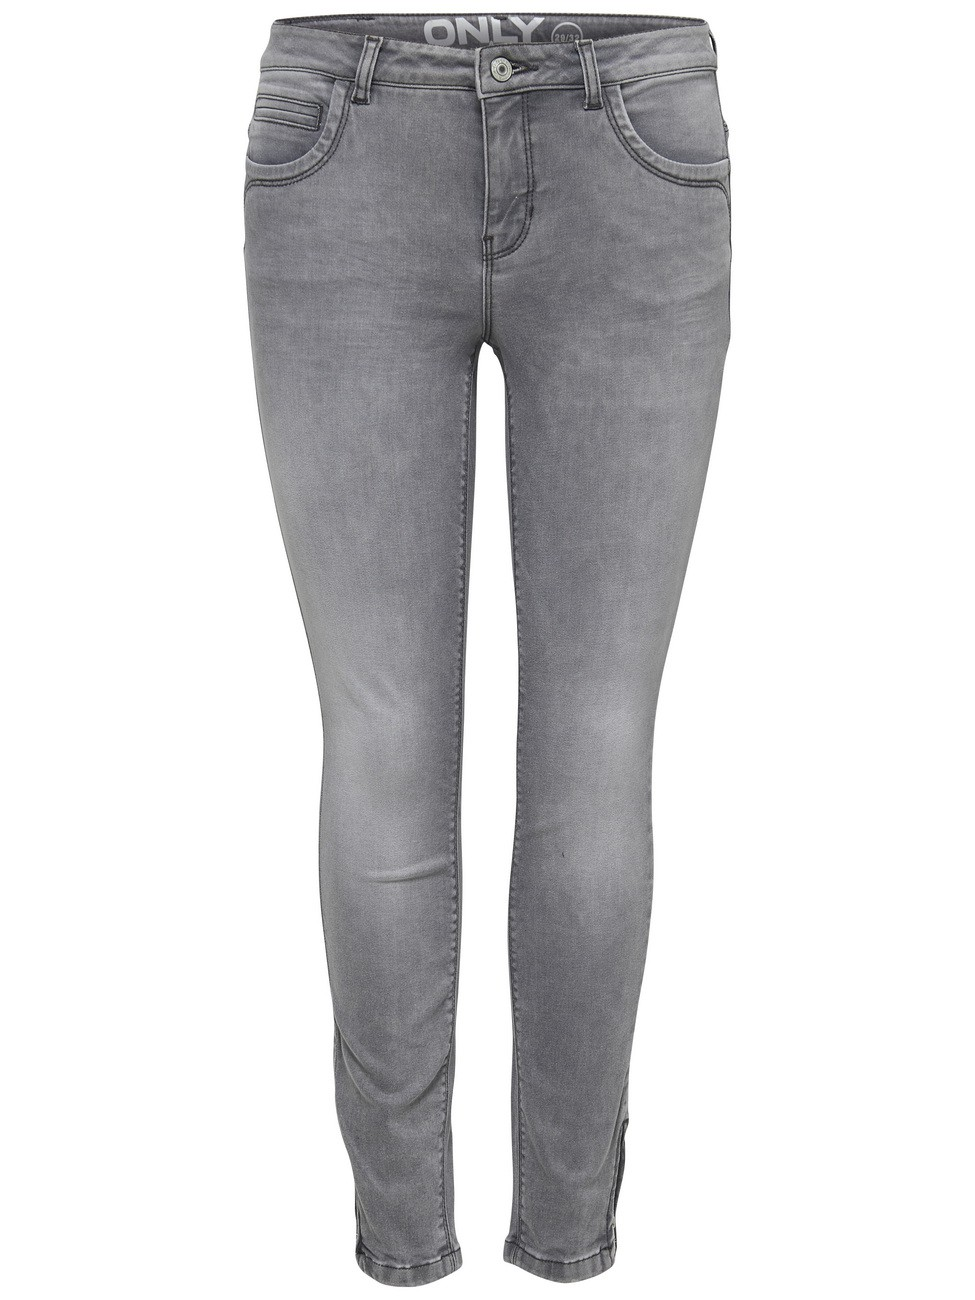 Only Damen Jeans onlKENDELL - Grey  - Grau - Medium Grey Denim